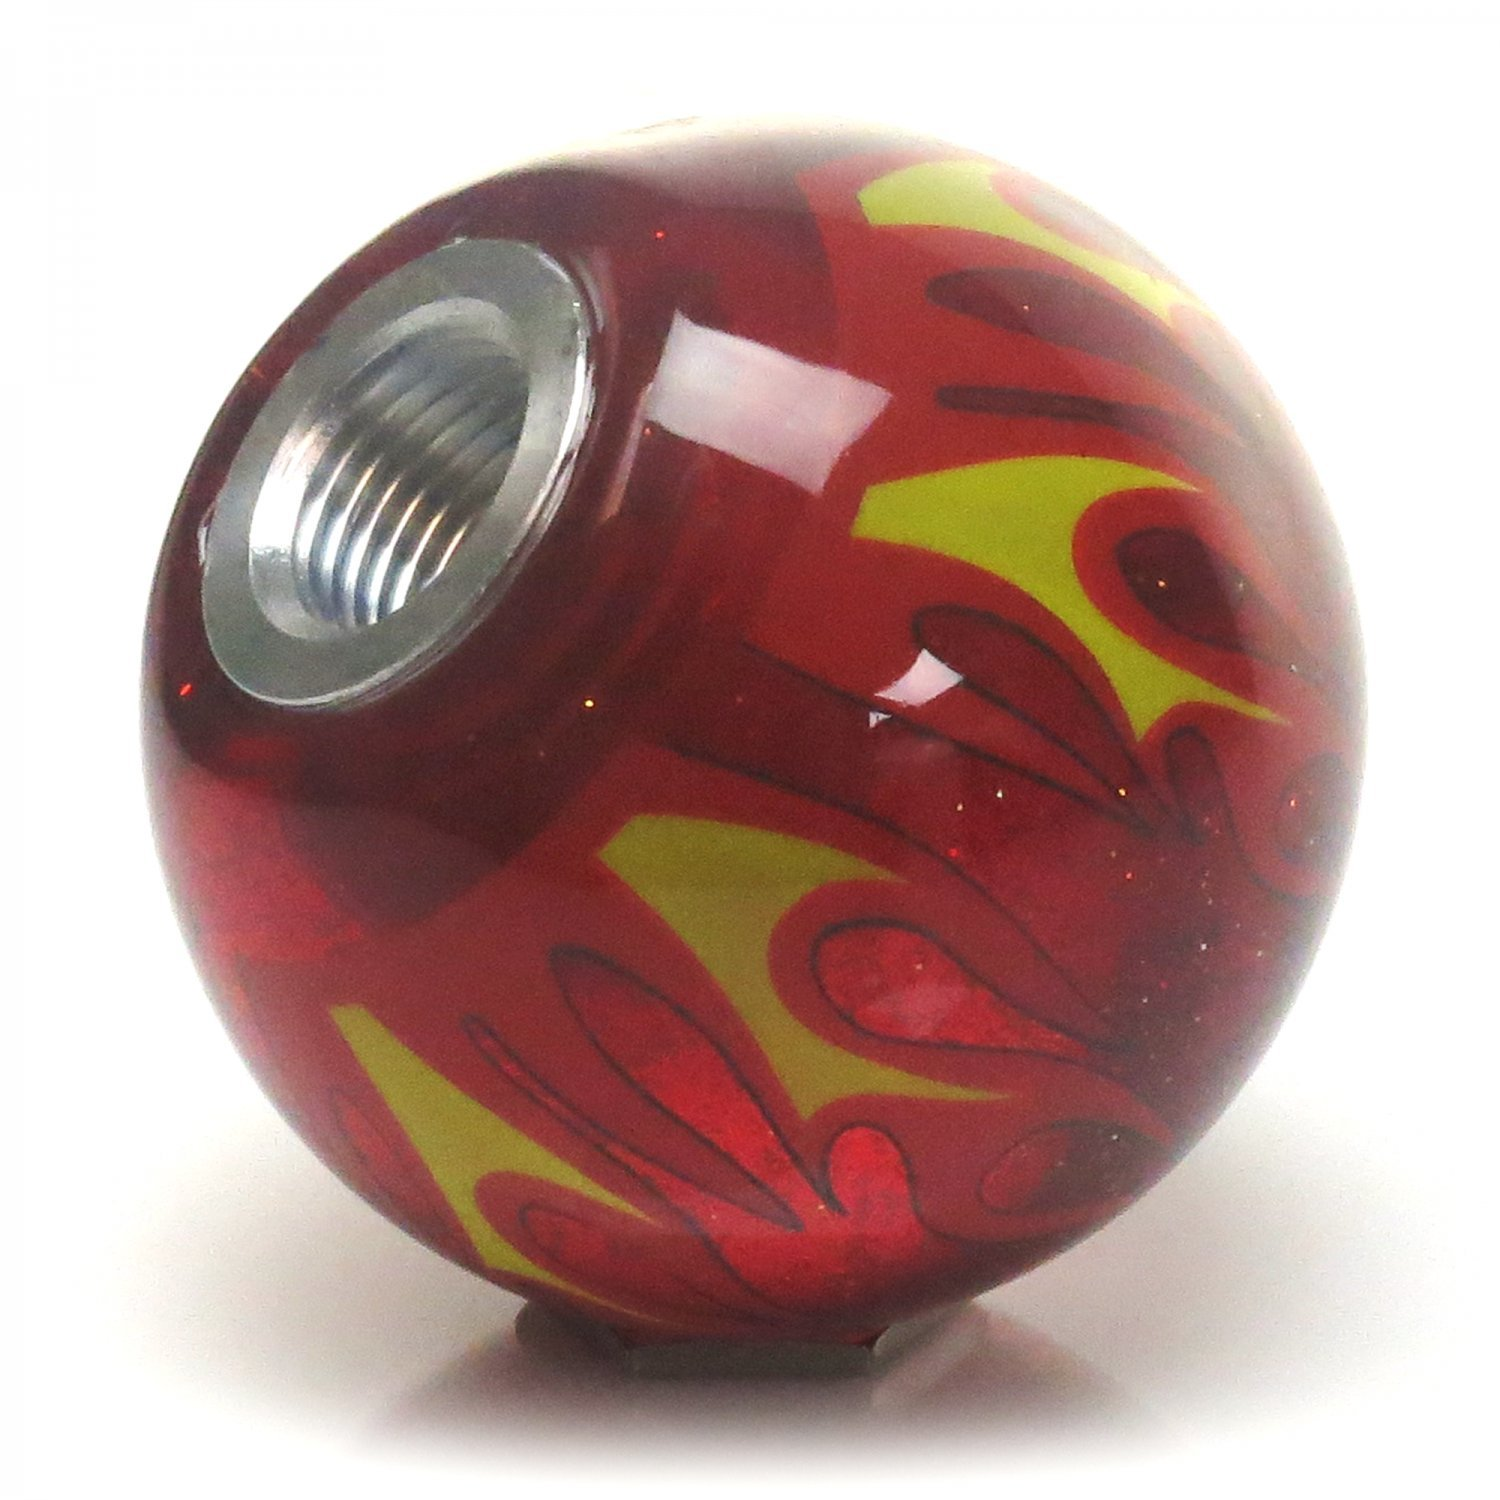 American Shifter 296788 Shift Knob Pink Jet Red Flame Metal Flake with M16 x 1.5 Insert